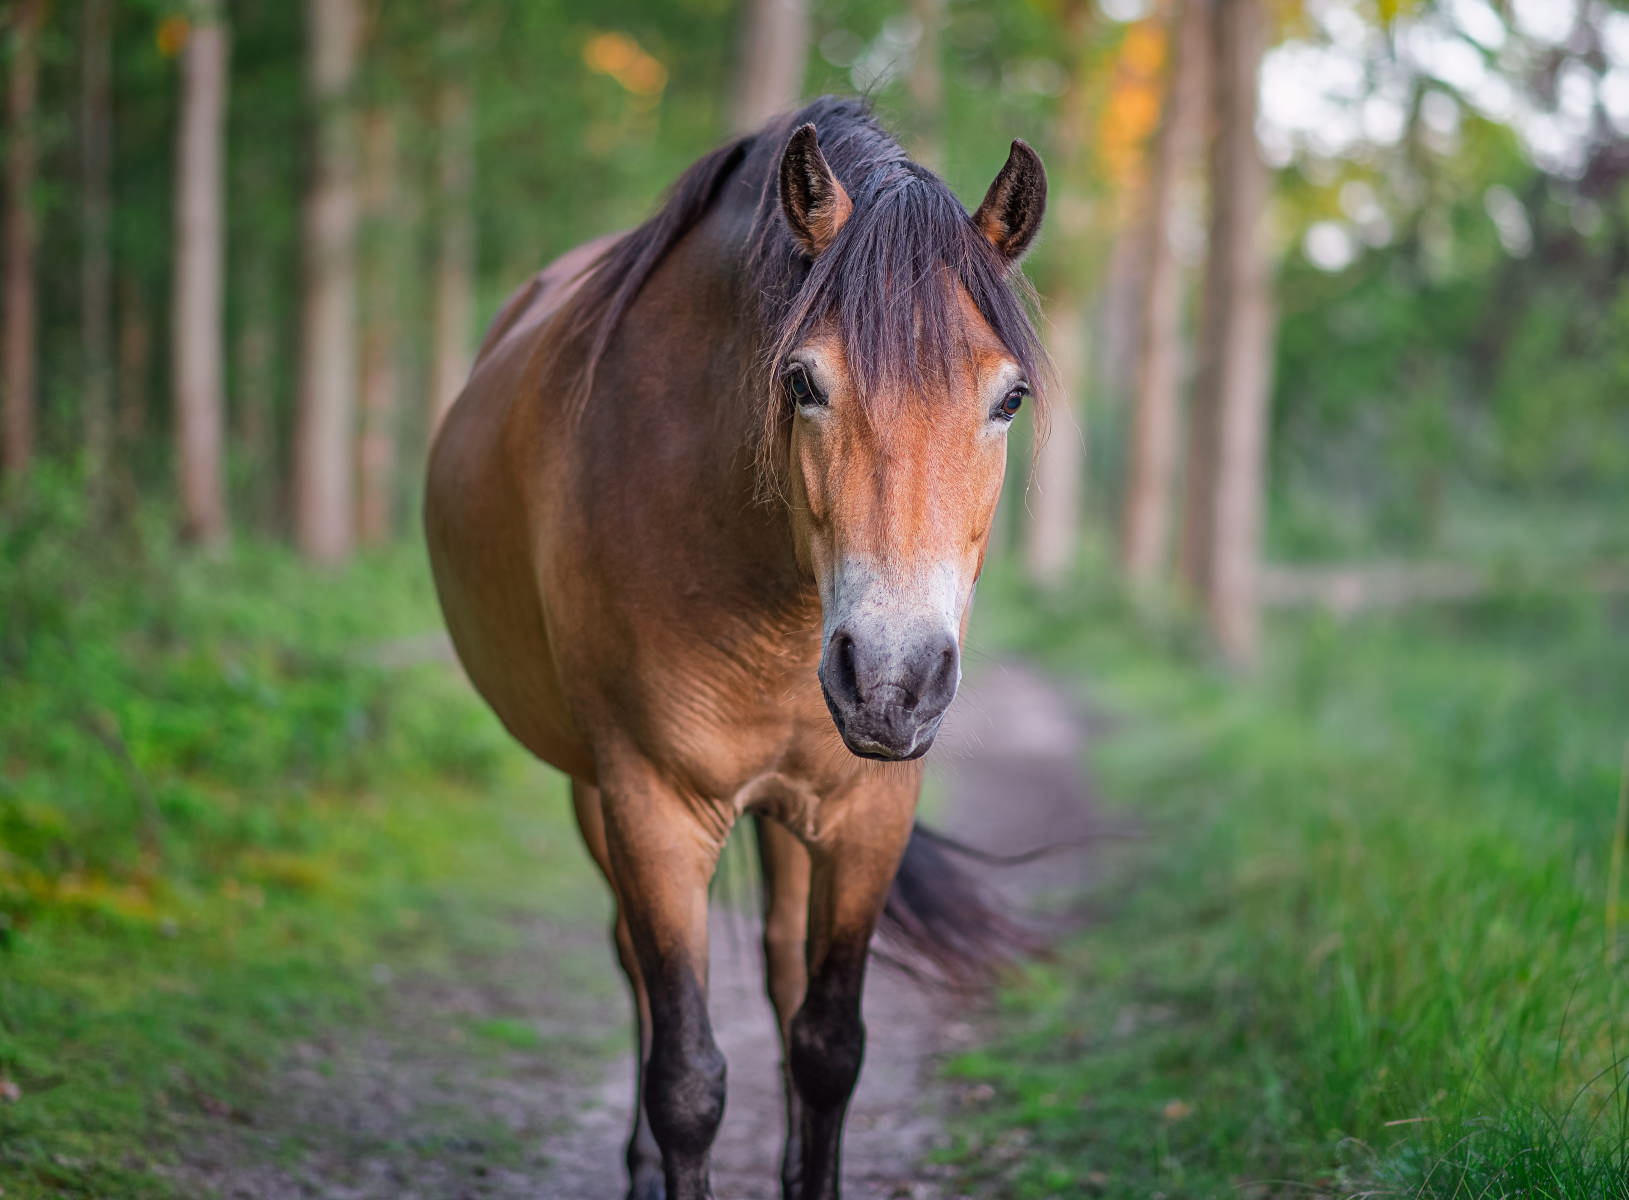 horse coming up close on forest path